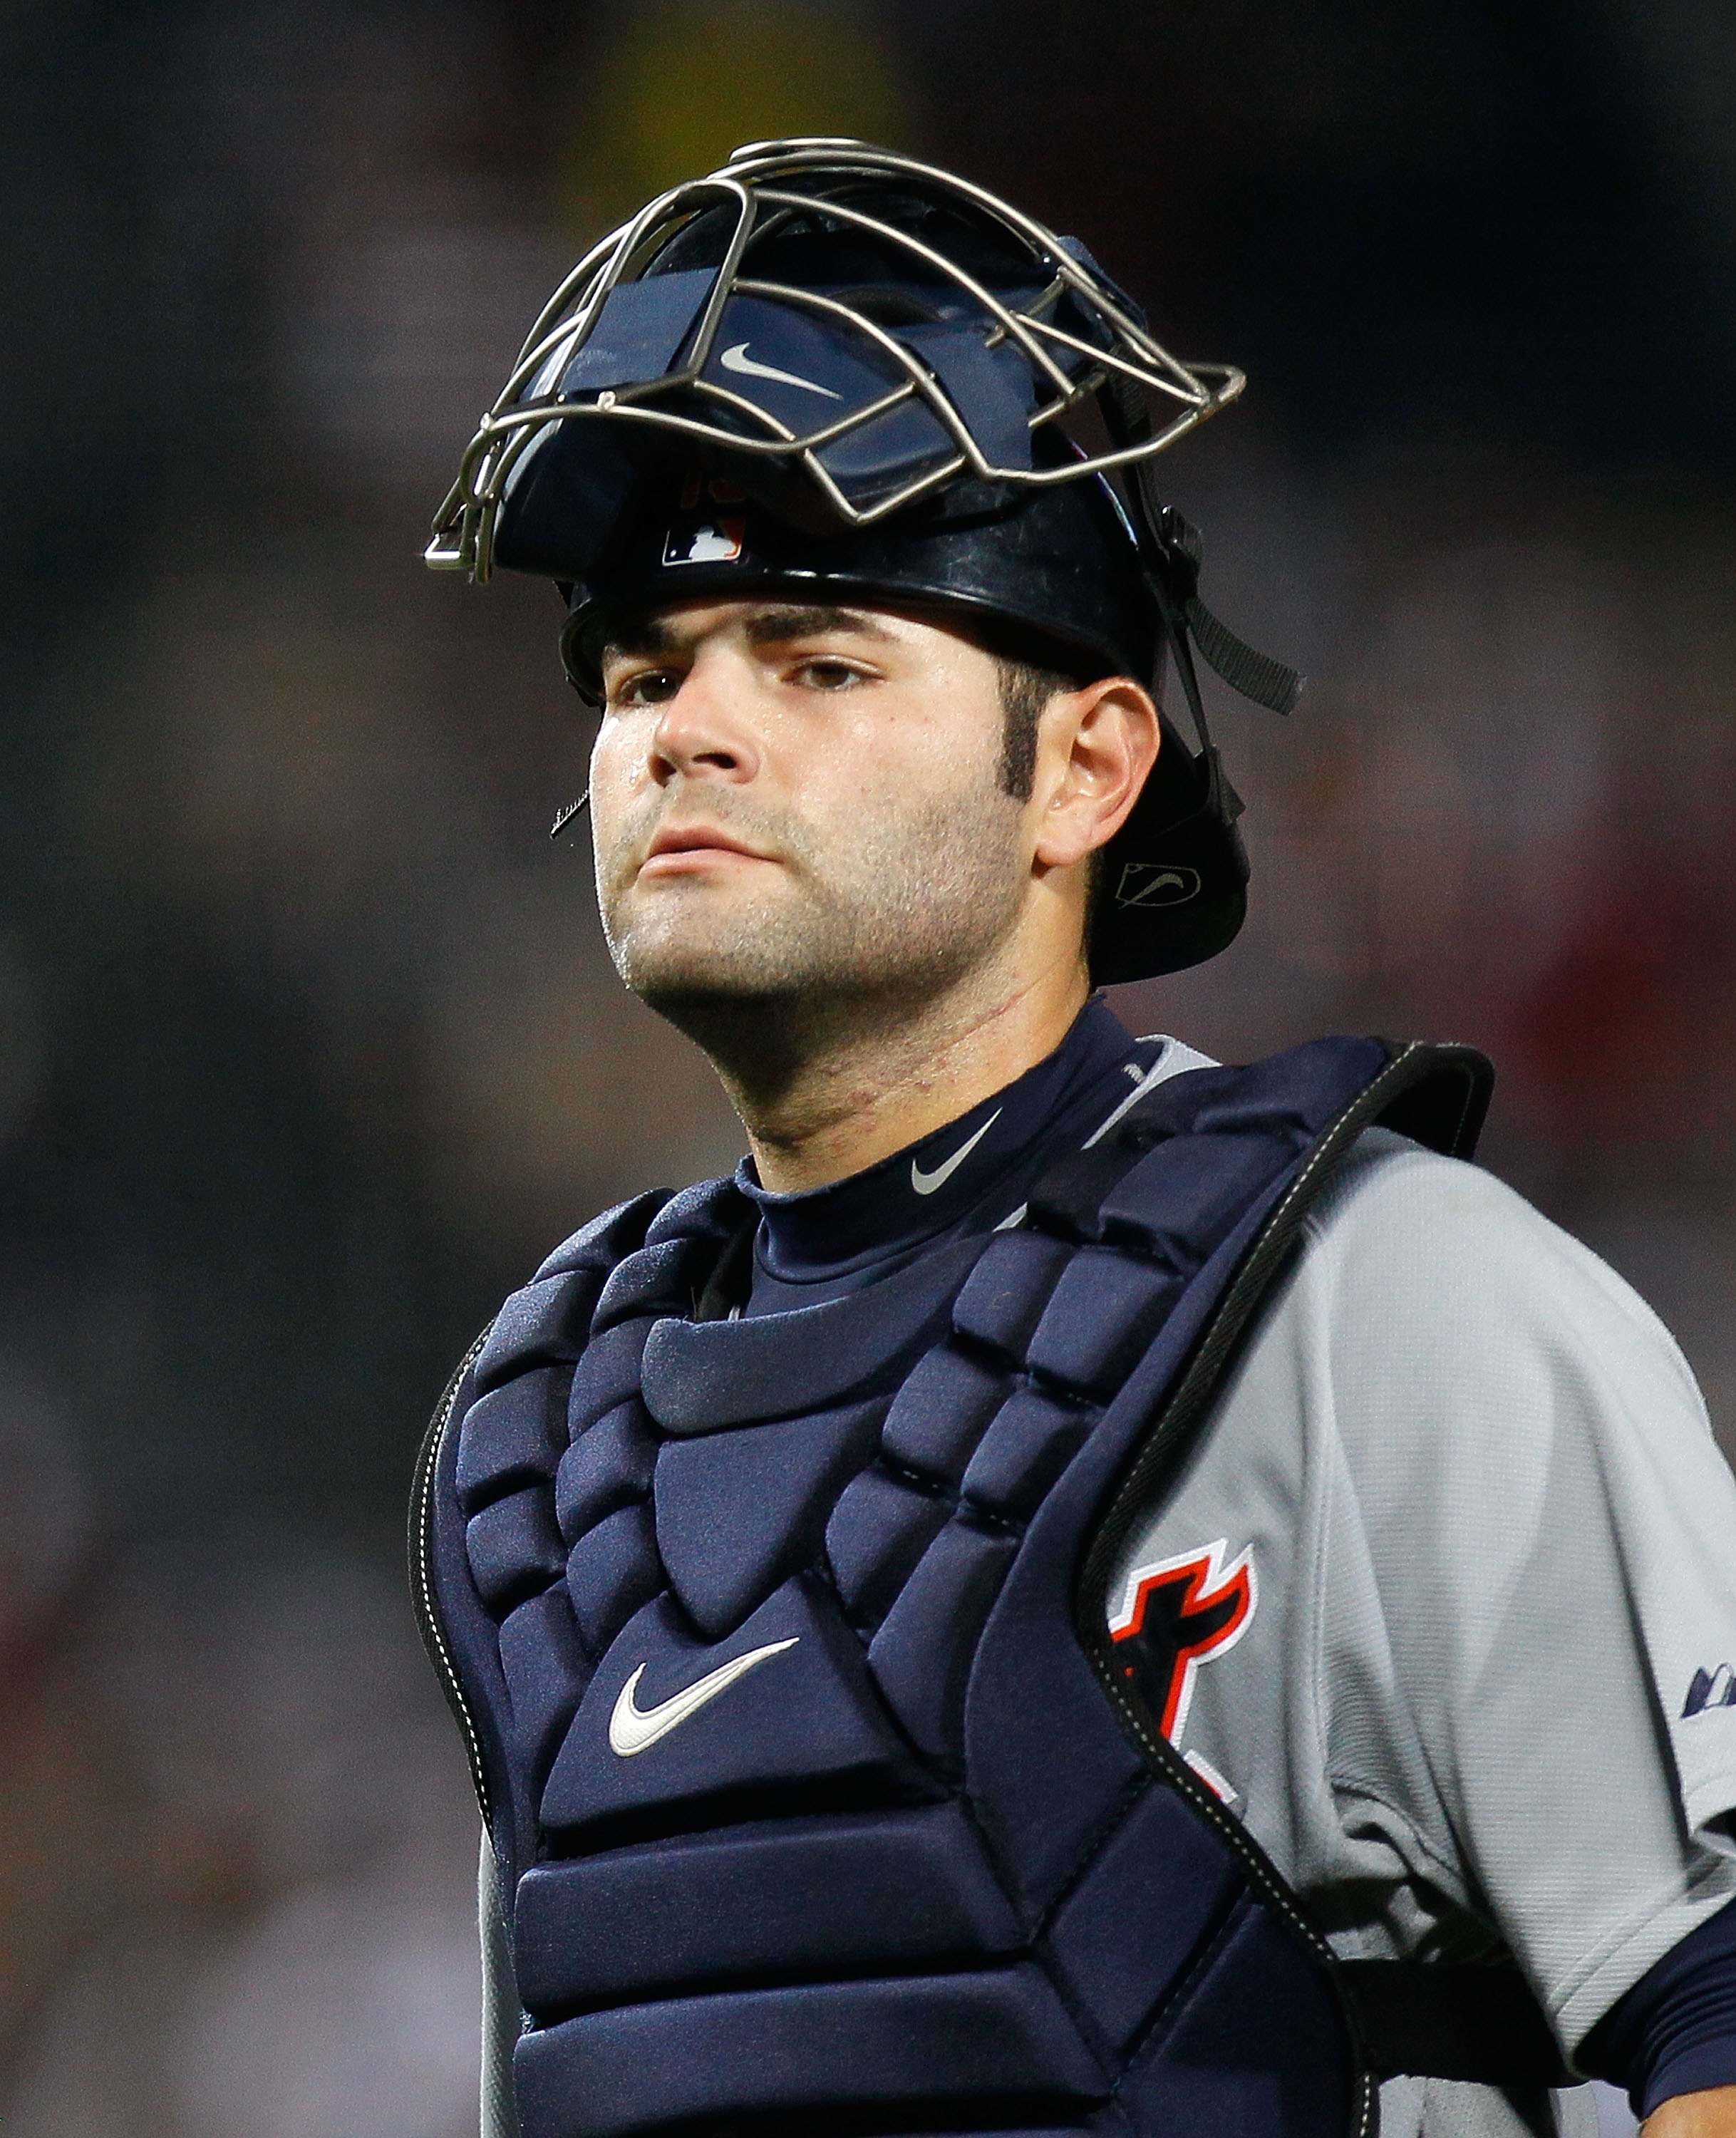 ATLANTA - JUNE 25:  Catcher Alex Avila #13 of the Detroit Tigers against the Atlanta Braves at Turner Field on June 25, 2010 in Atlanta, Georgia.  (Photo by Kevin C. Cox/Getty Images)